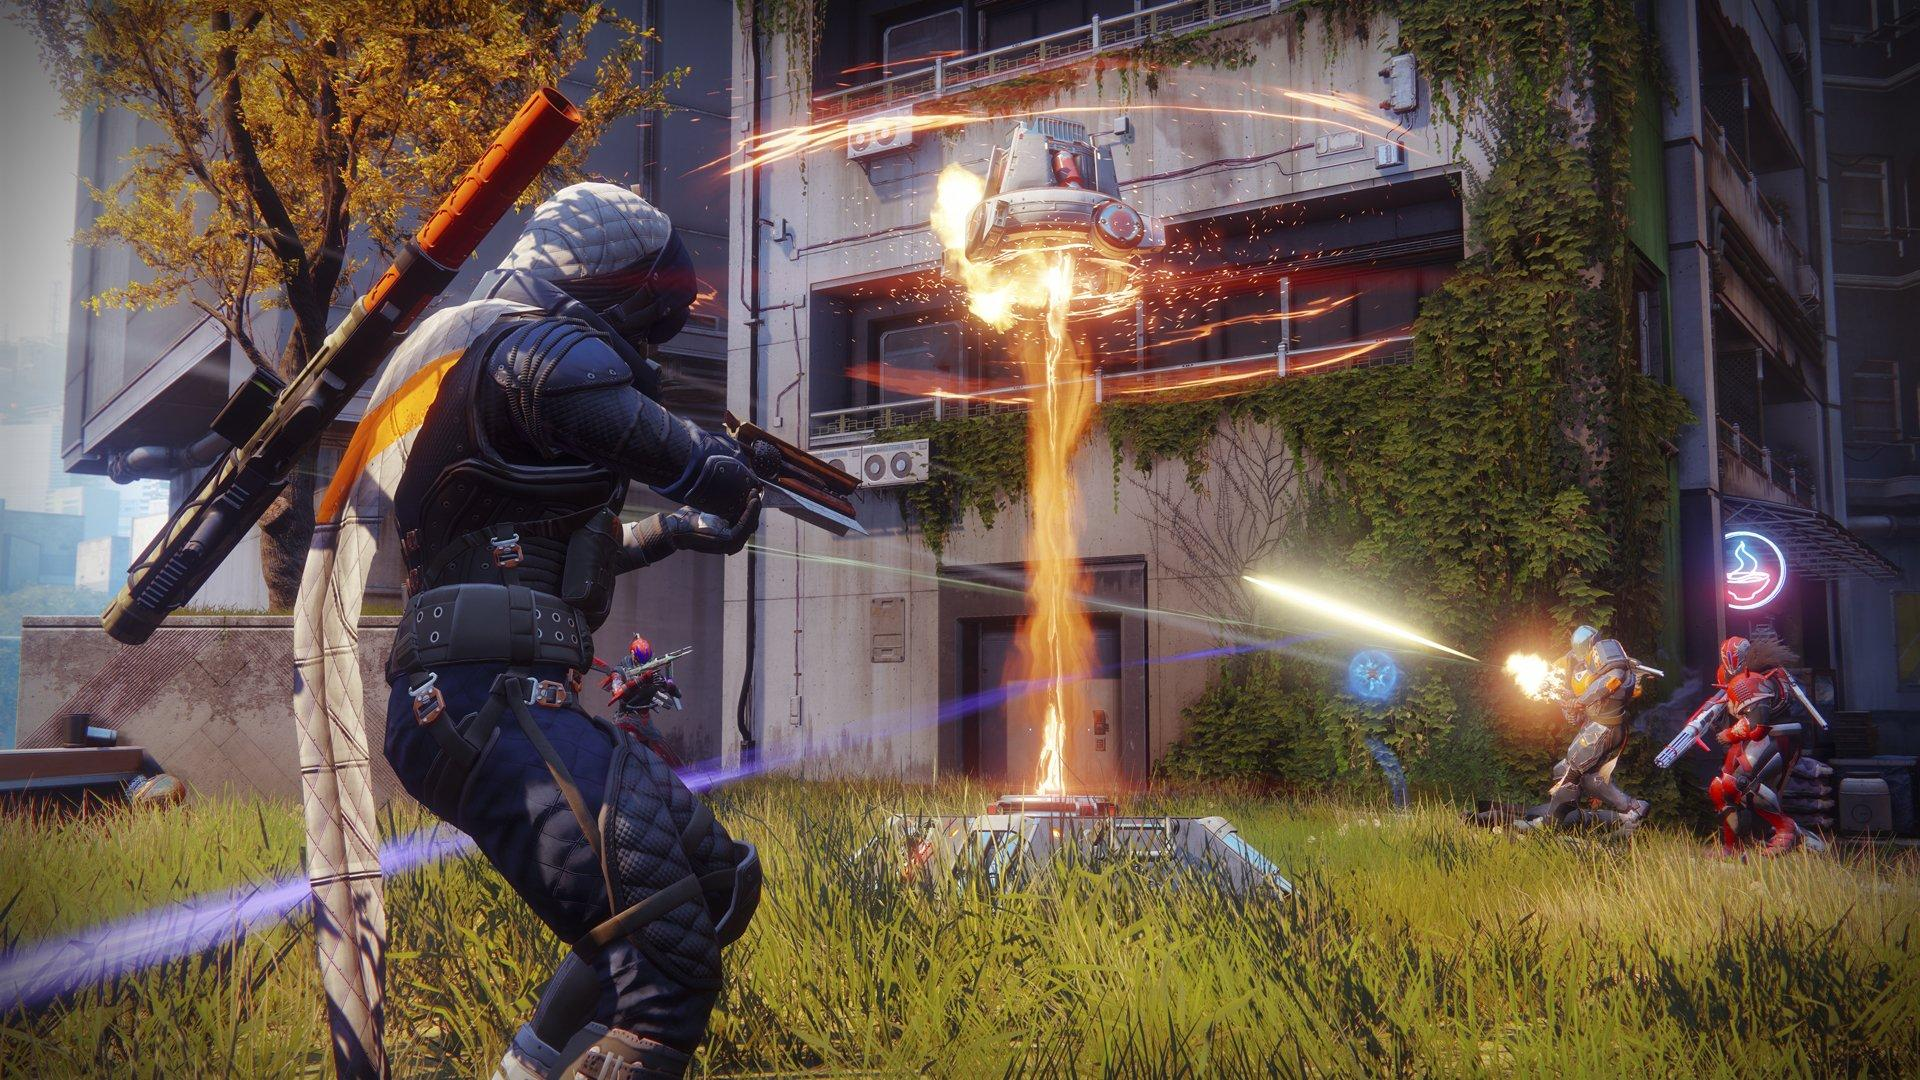 Bungie pulls back the curtain on Destiny 2